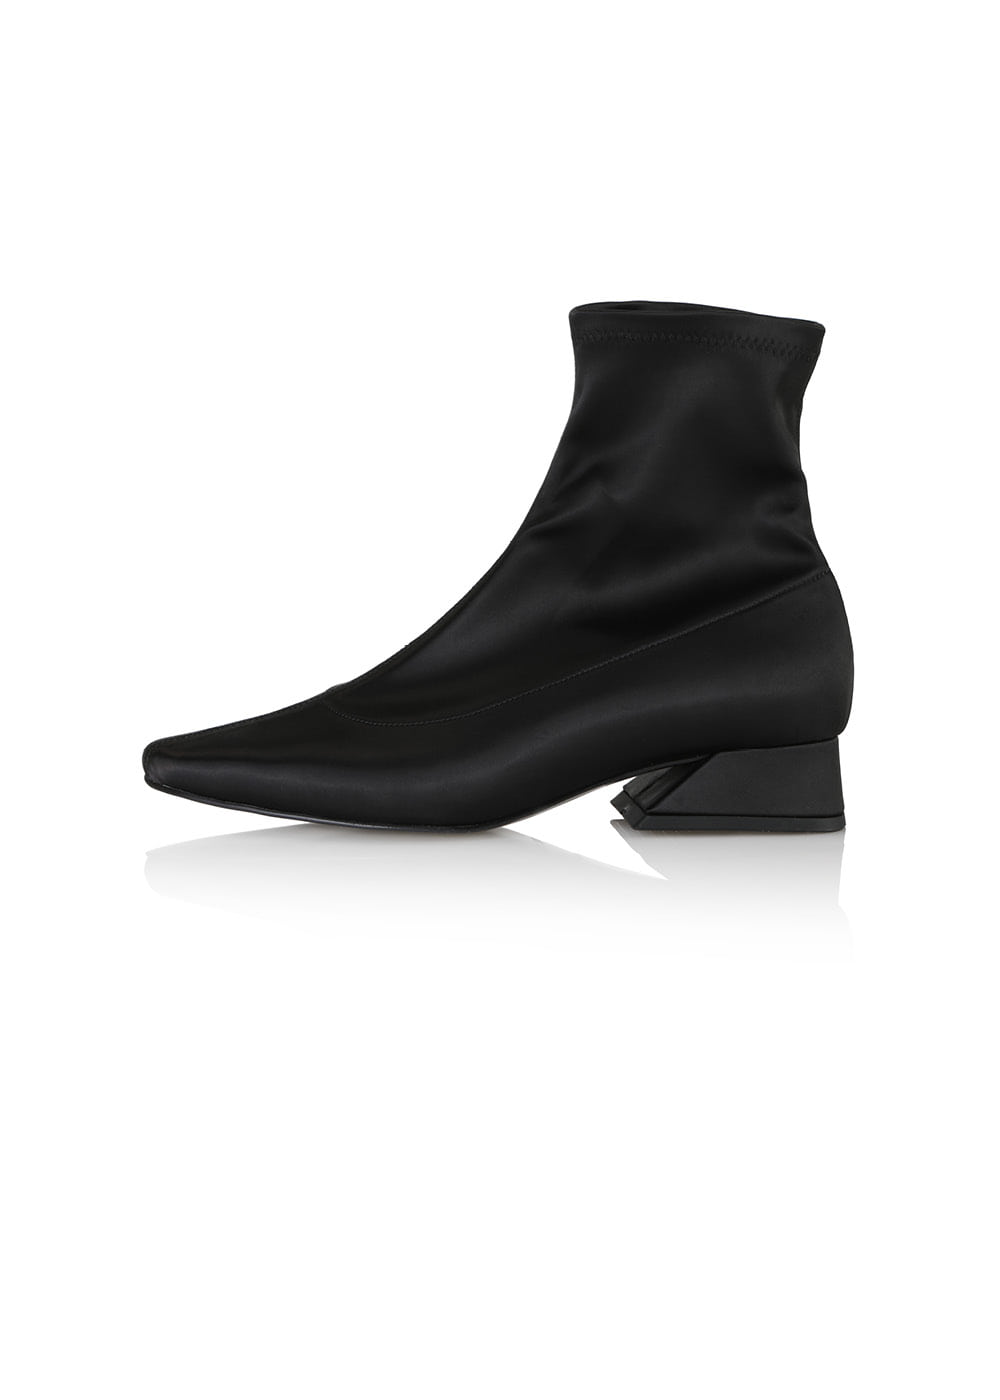 Melody Satin Socks Boots / YY9A-B09 / 3 colors